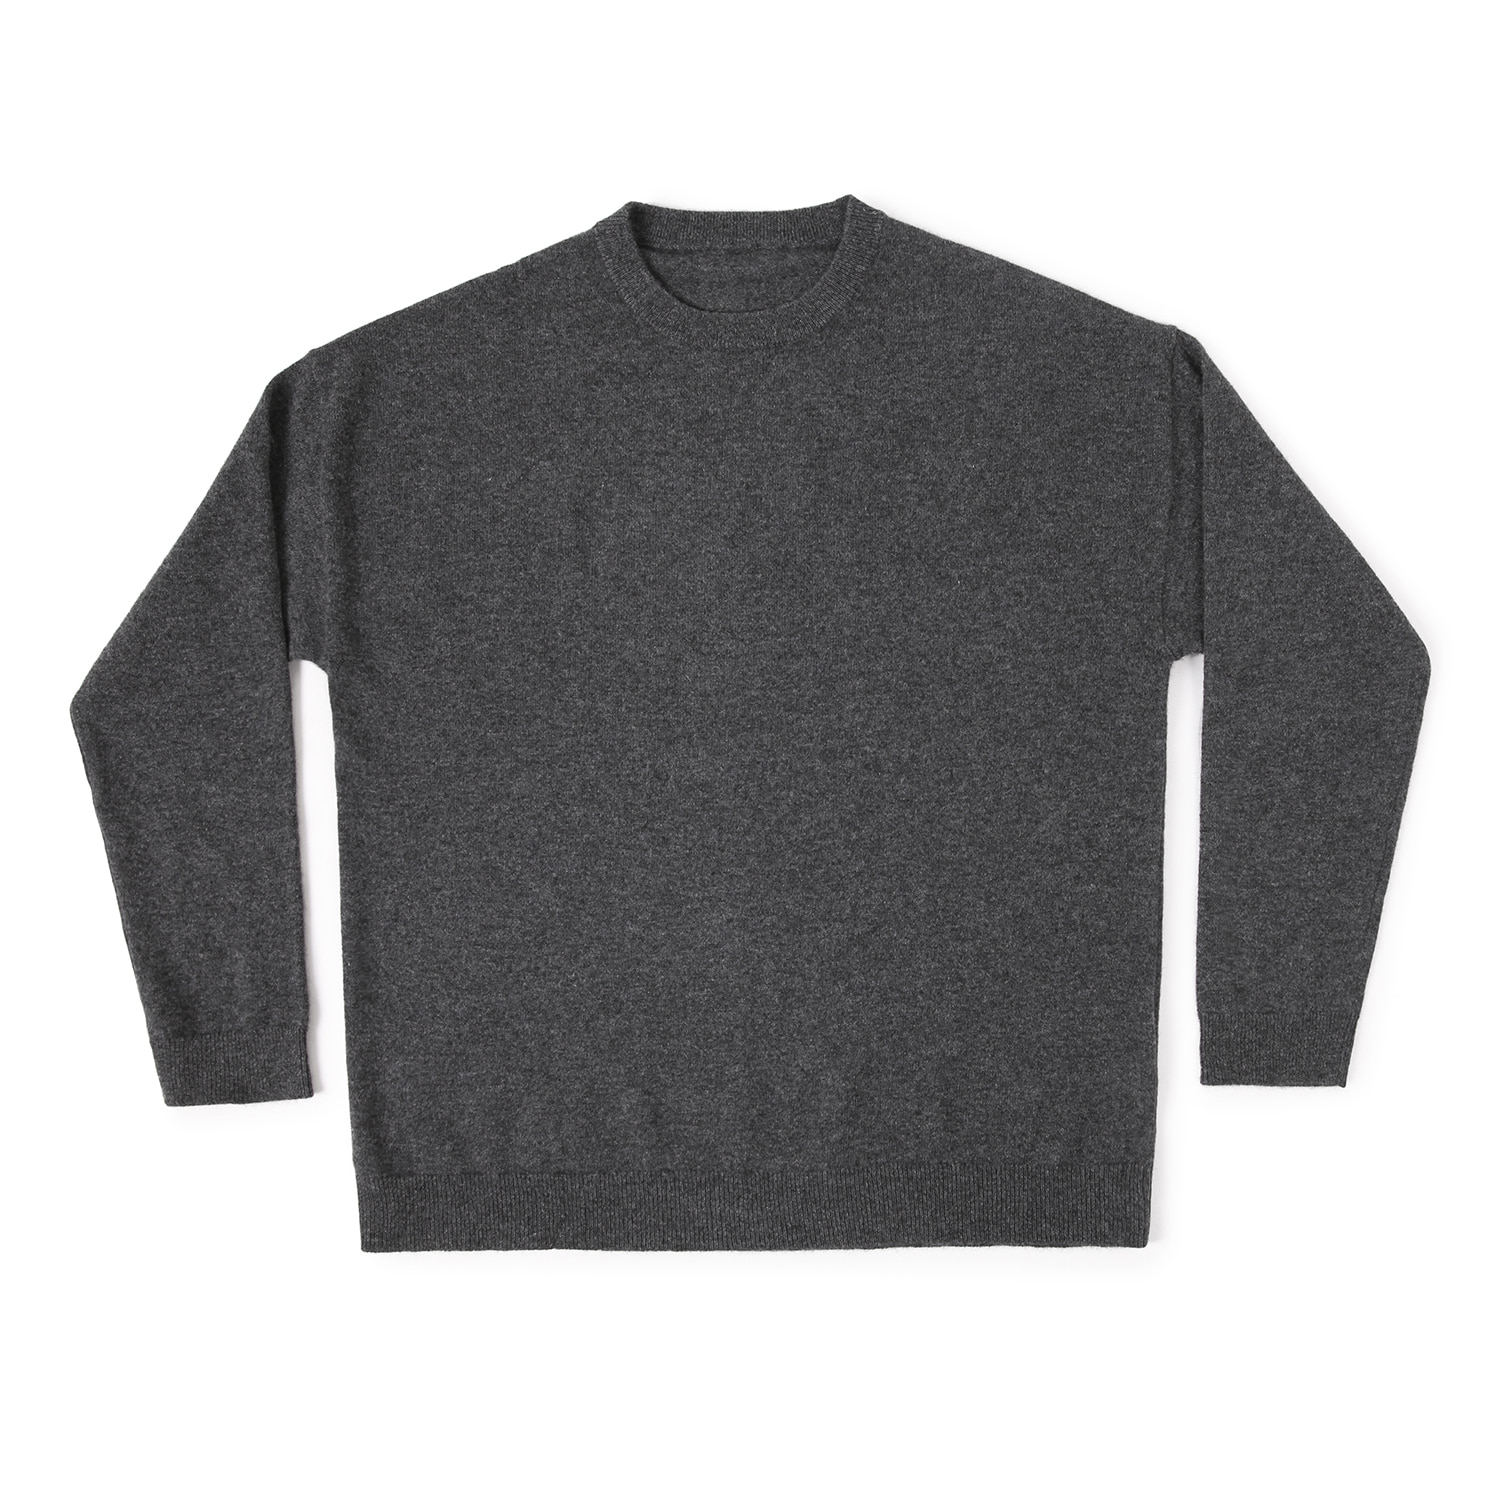 25%OFF_Cashmere100 Oversized Knit (Charcoal)